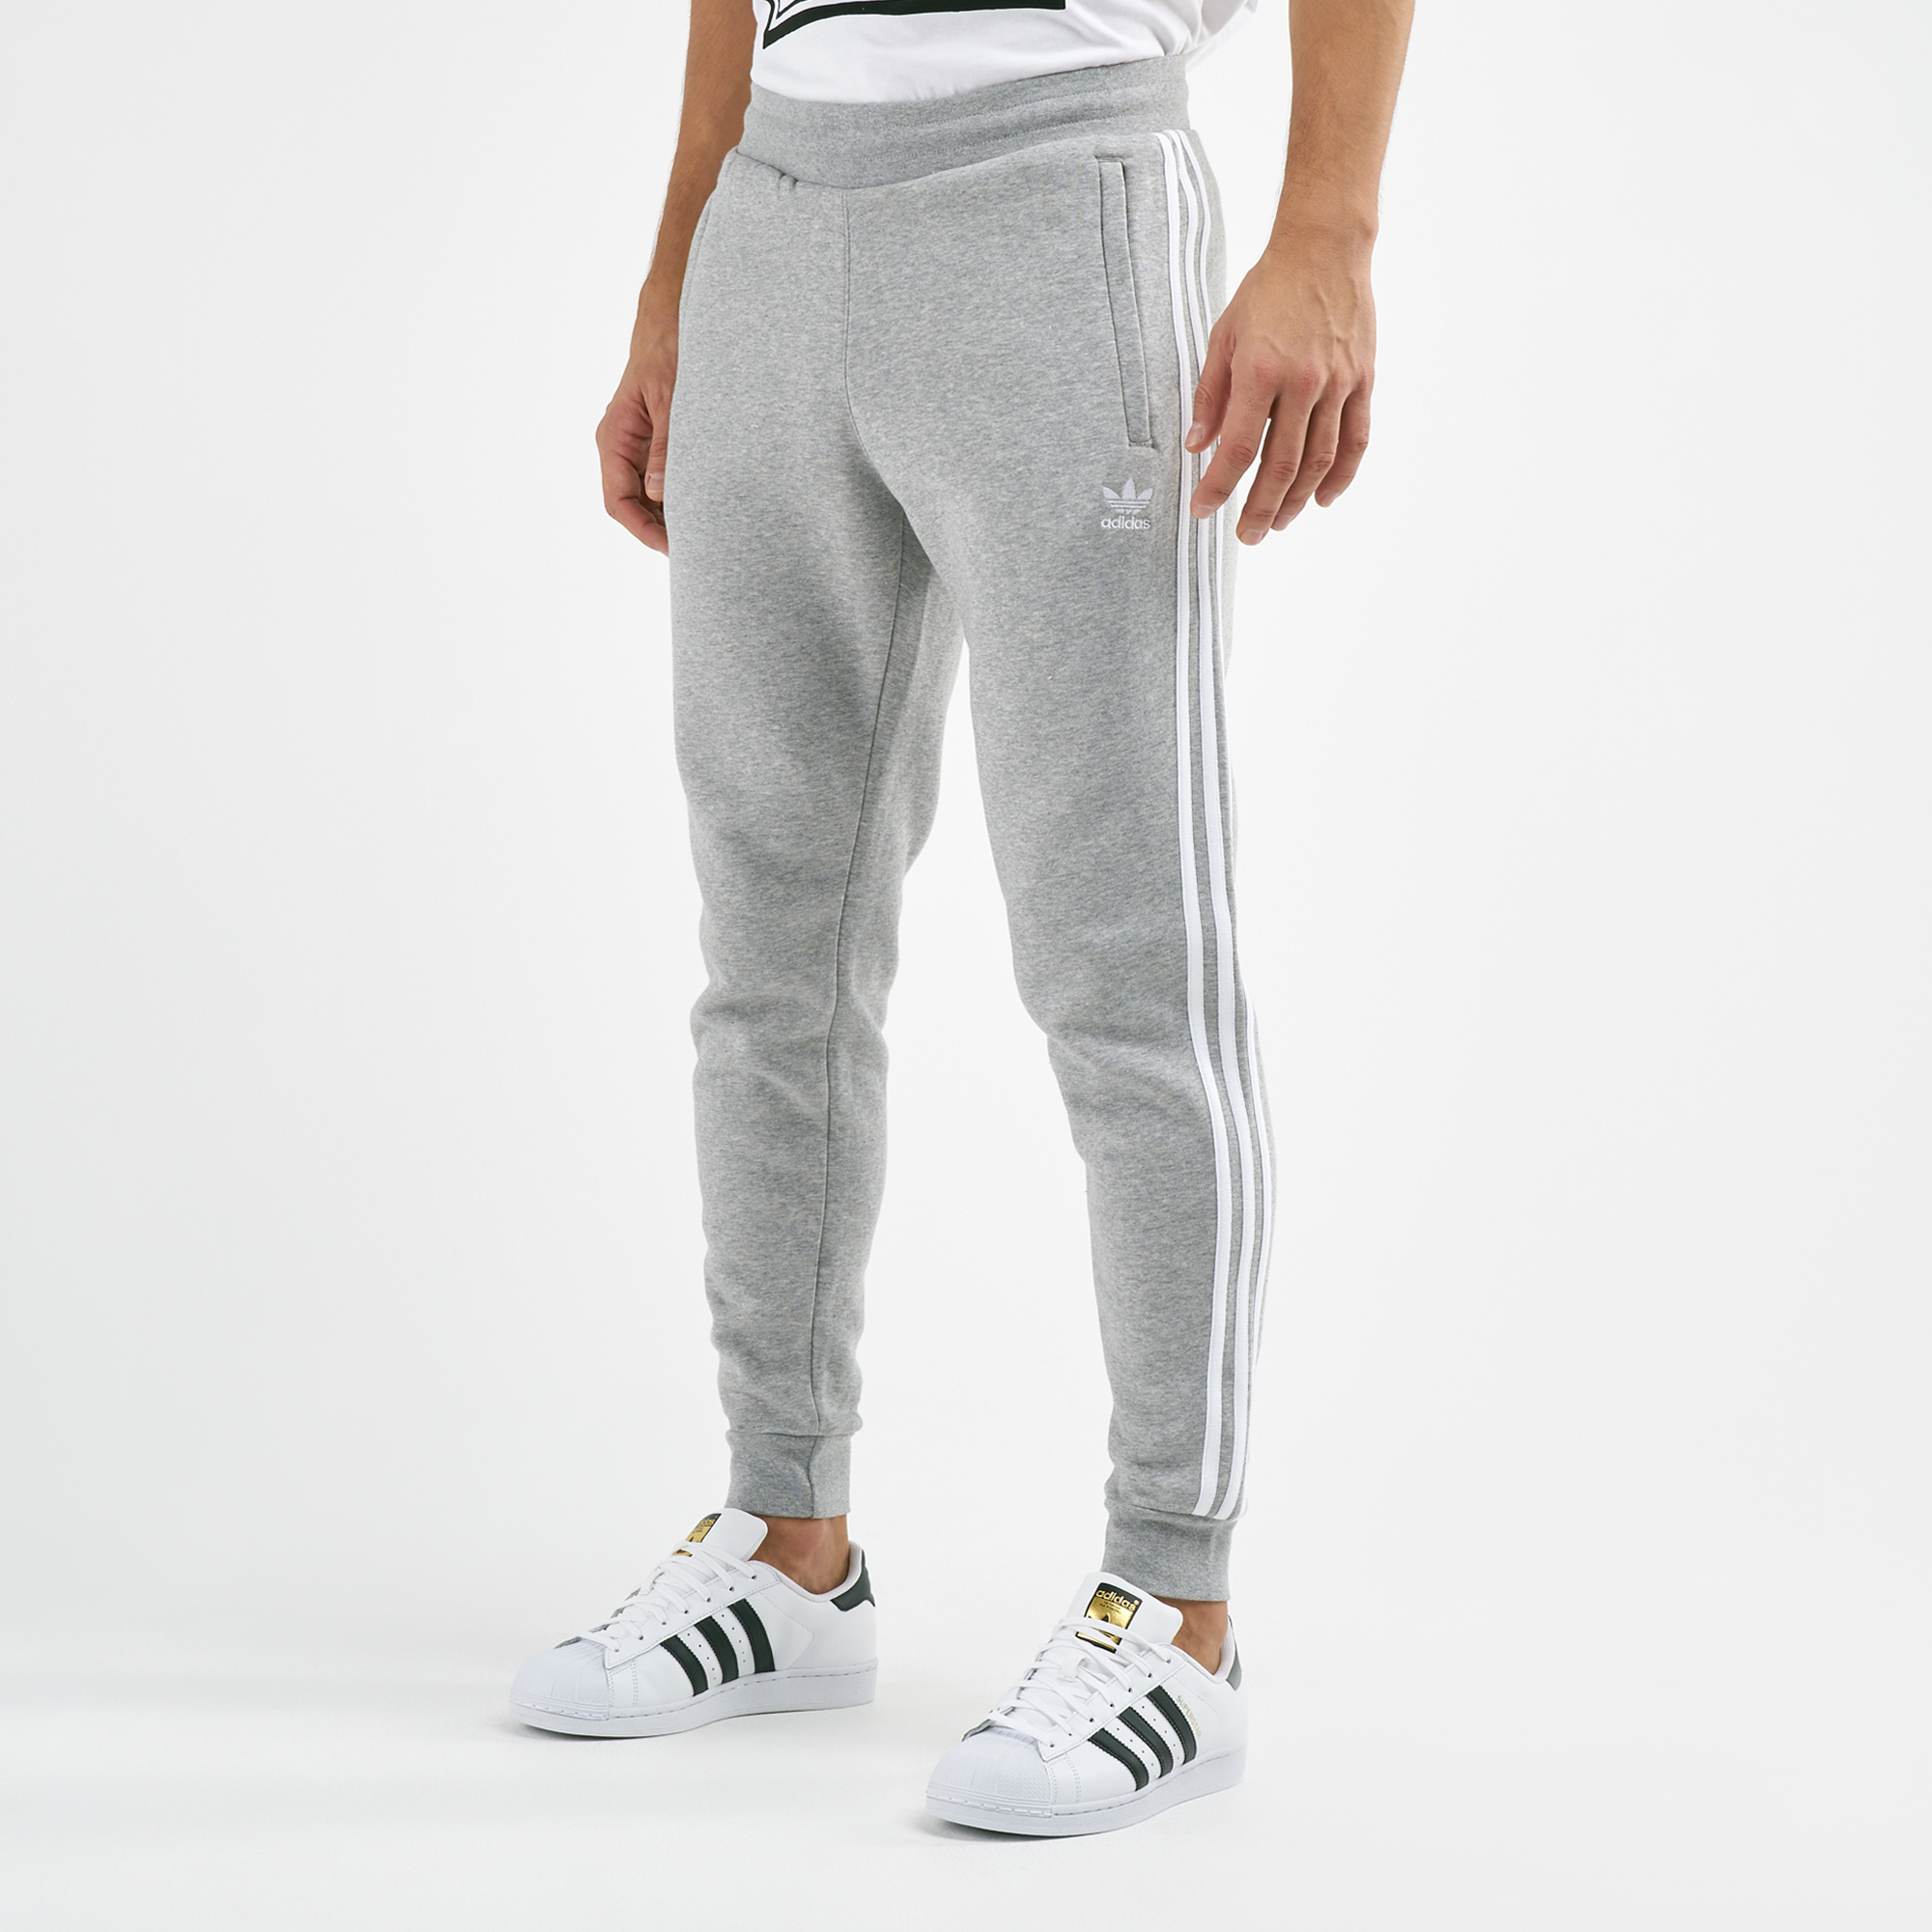 a4b96ea3 adidas Men's Daily 3-Stripes Pants